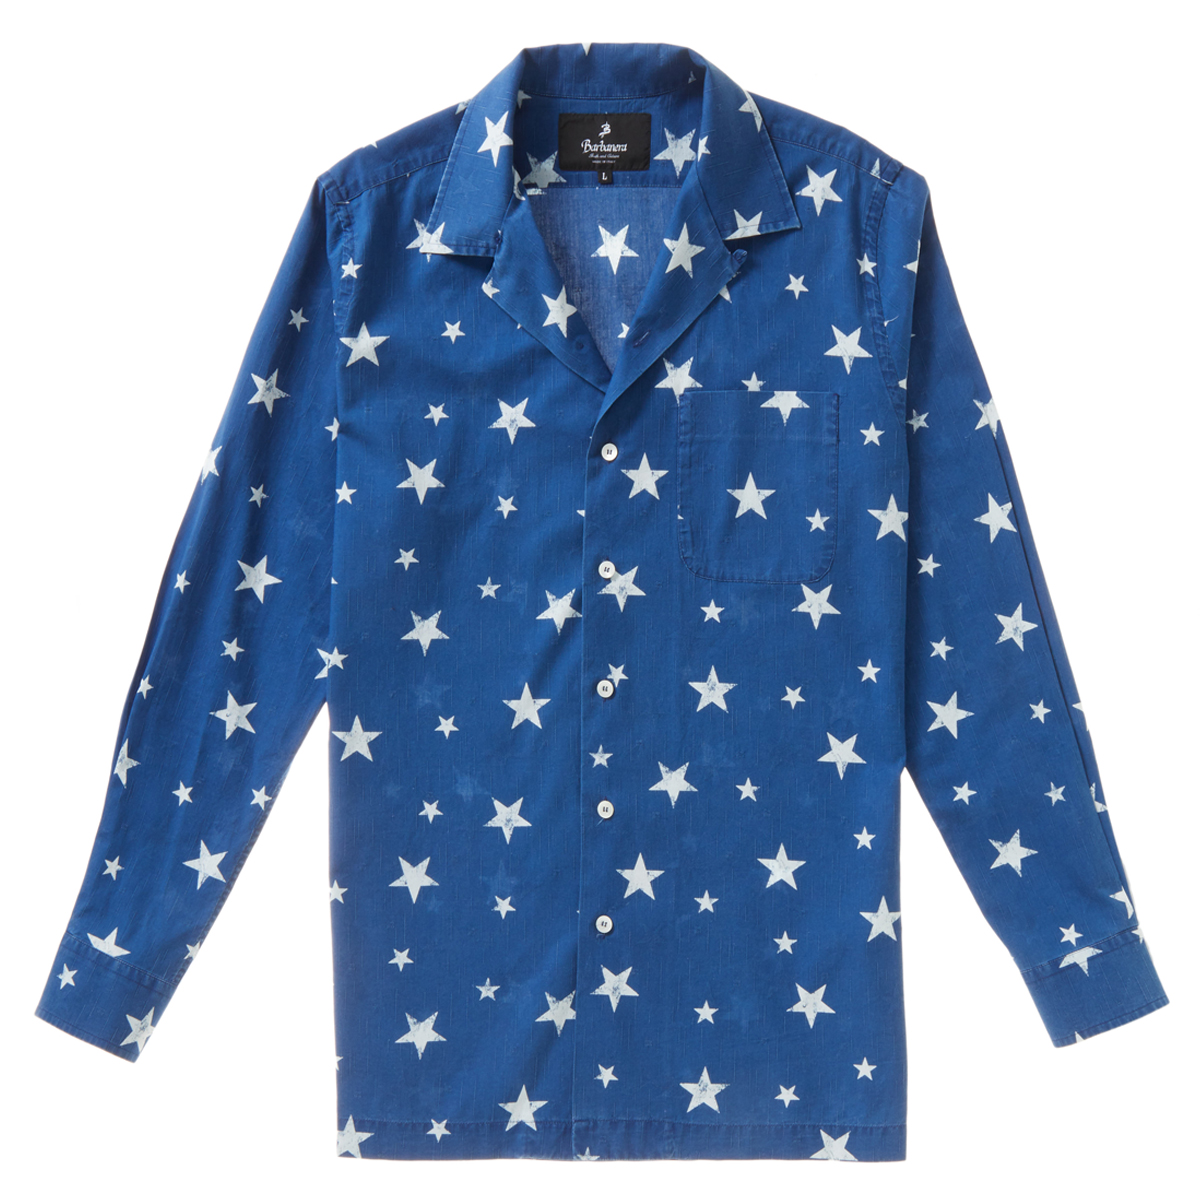 Blue Japanese Indigo Cotton Star Pattern Burt Long-Sleeved Shirt